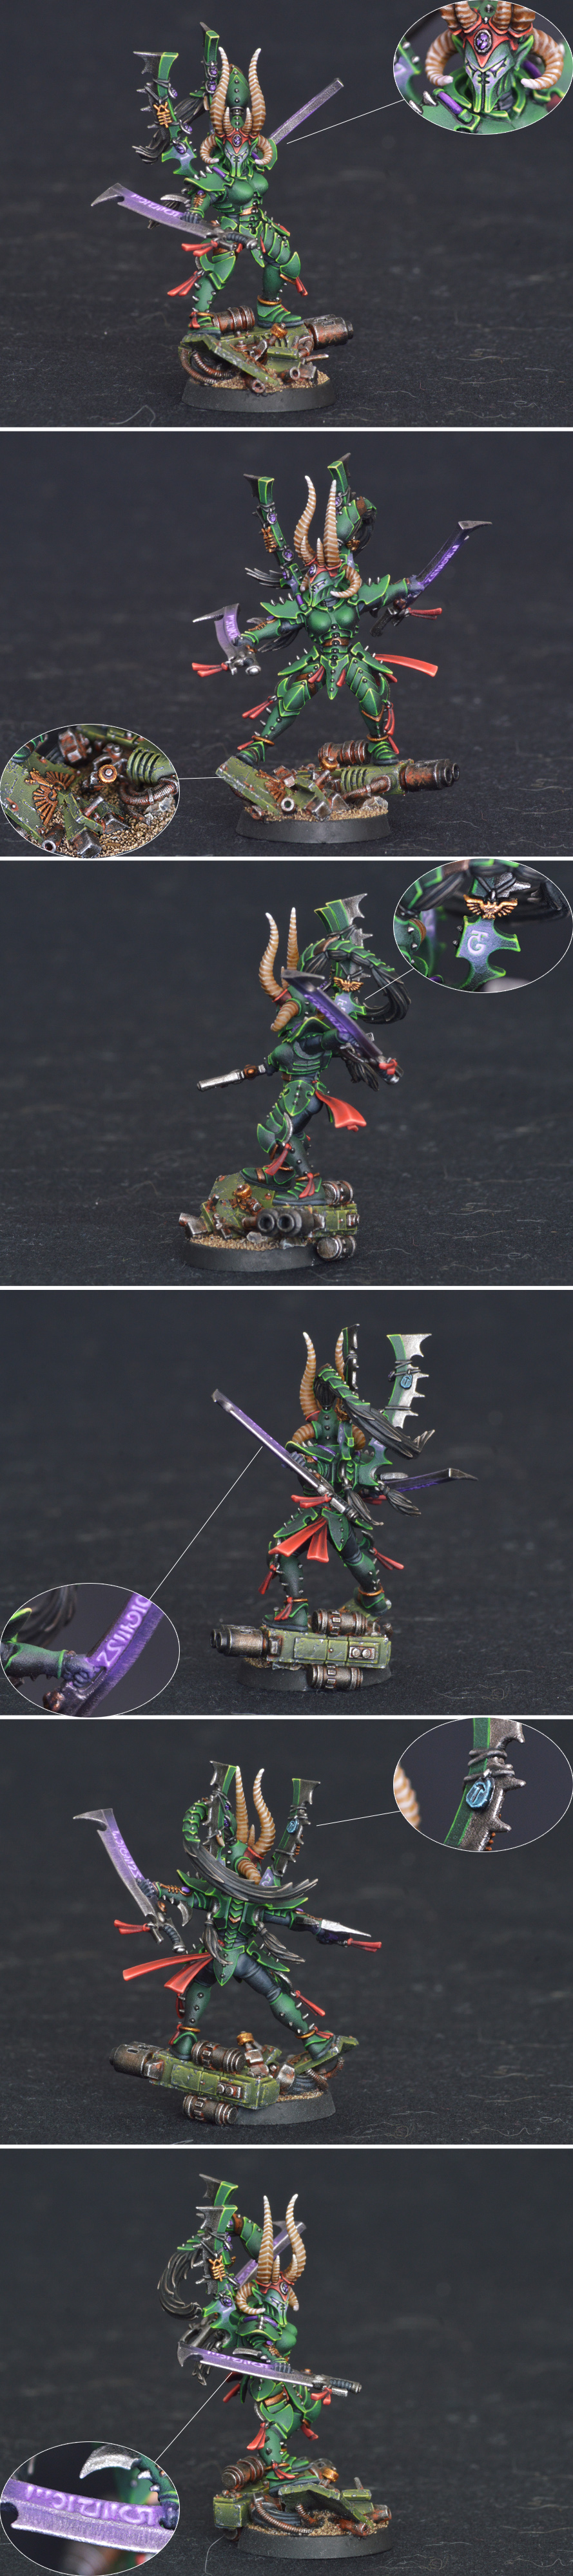 Dark eldar female master of blades - Drazhel (Drazhar)